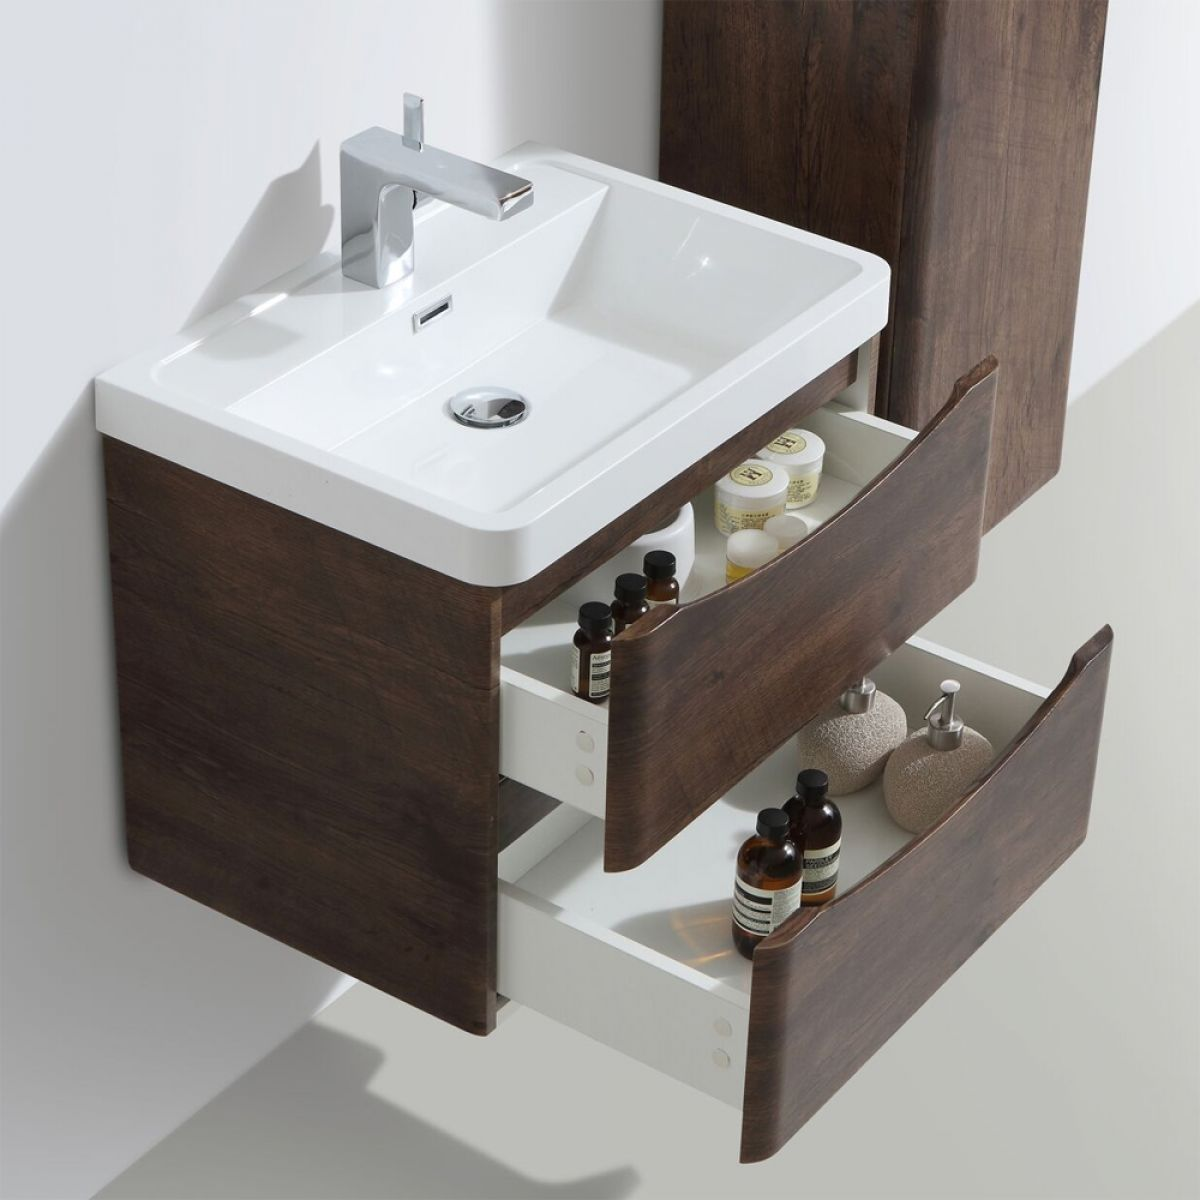 Bali Chestnut Wall Mounted Vanity Unit 600mm Lifestyle